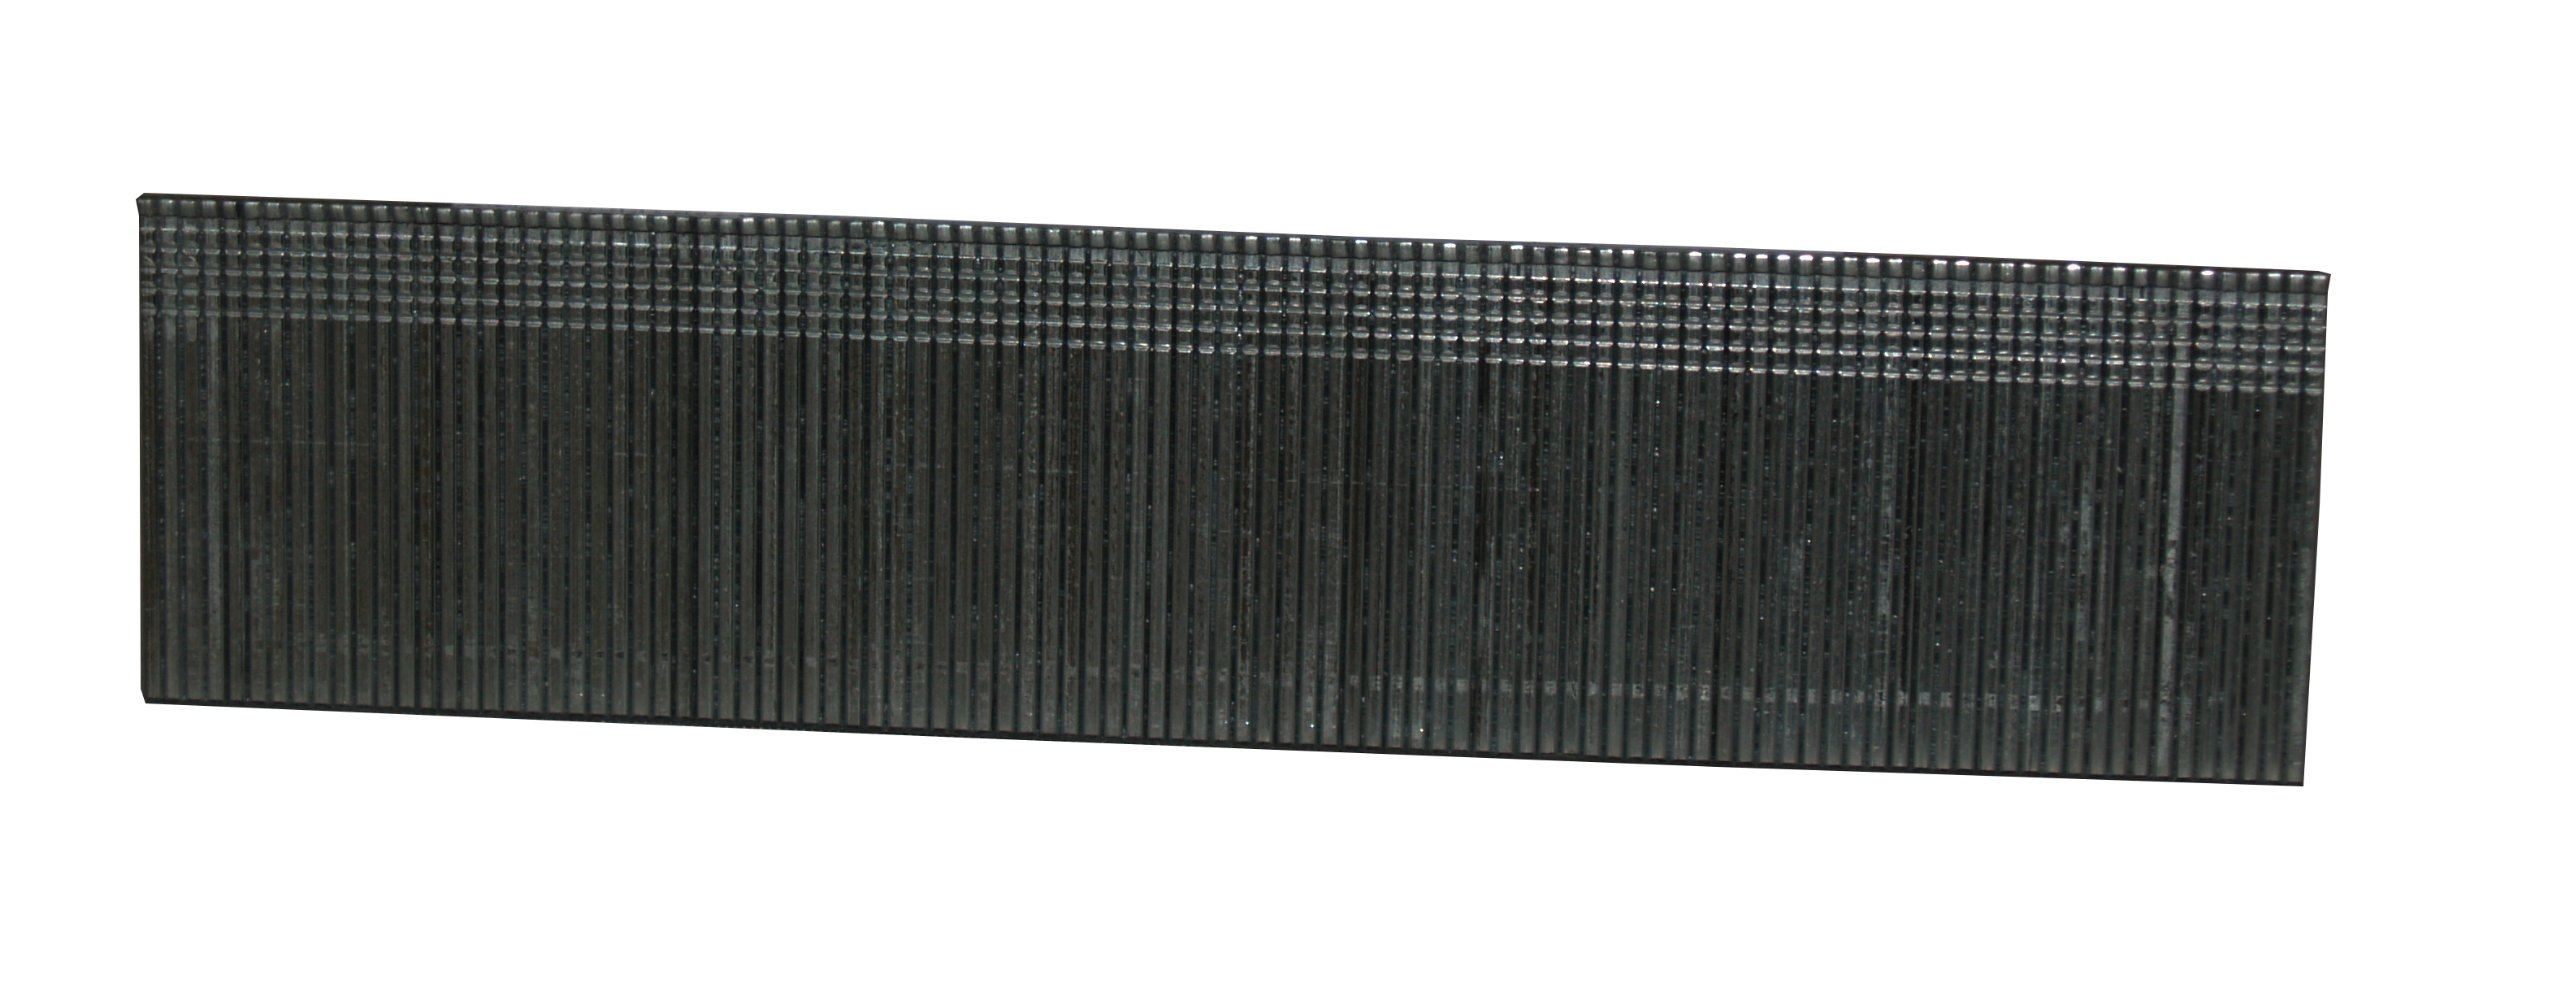 Simpson Strong Tie S18N200FNJ 2-Inch 18 Gauge Straight Finish Nails Similar to Senco and Porter Cable Style 304 Stainless Steel, 5000 Per Box